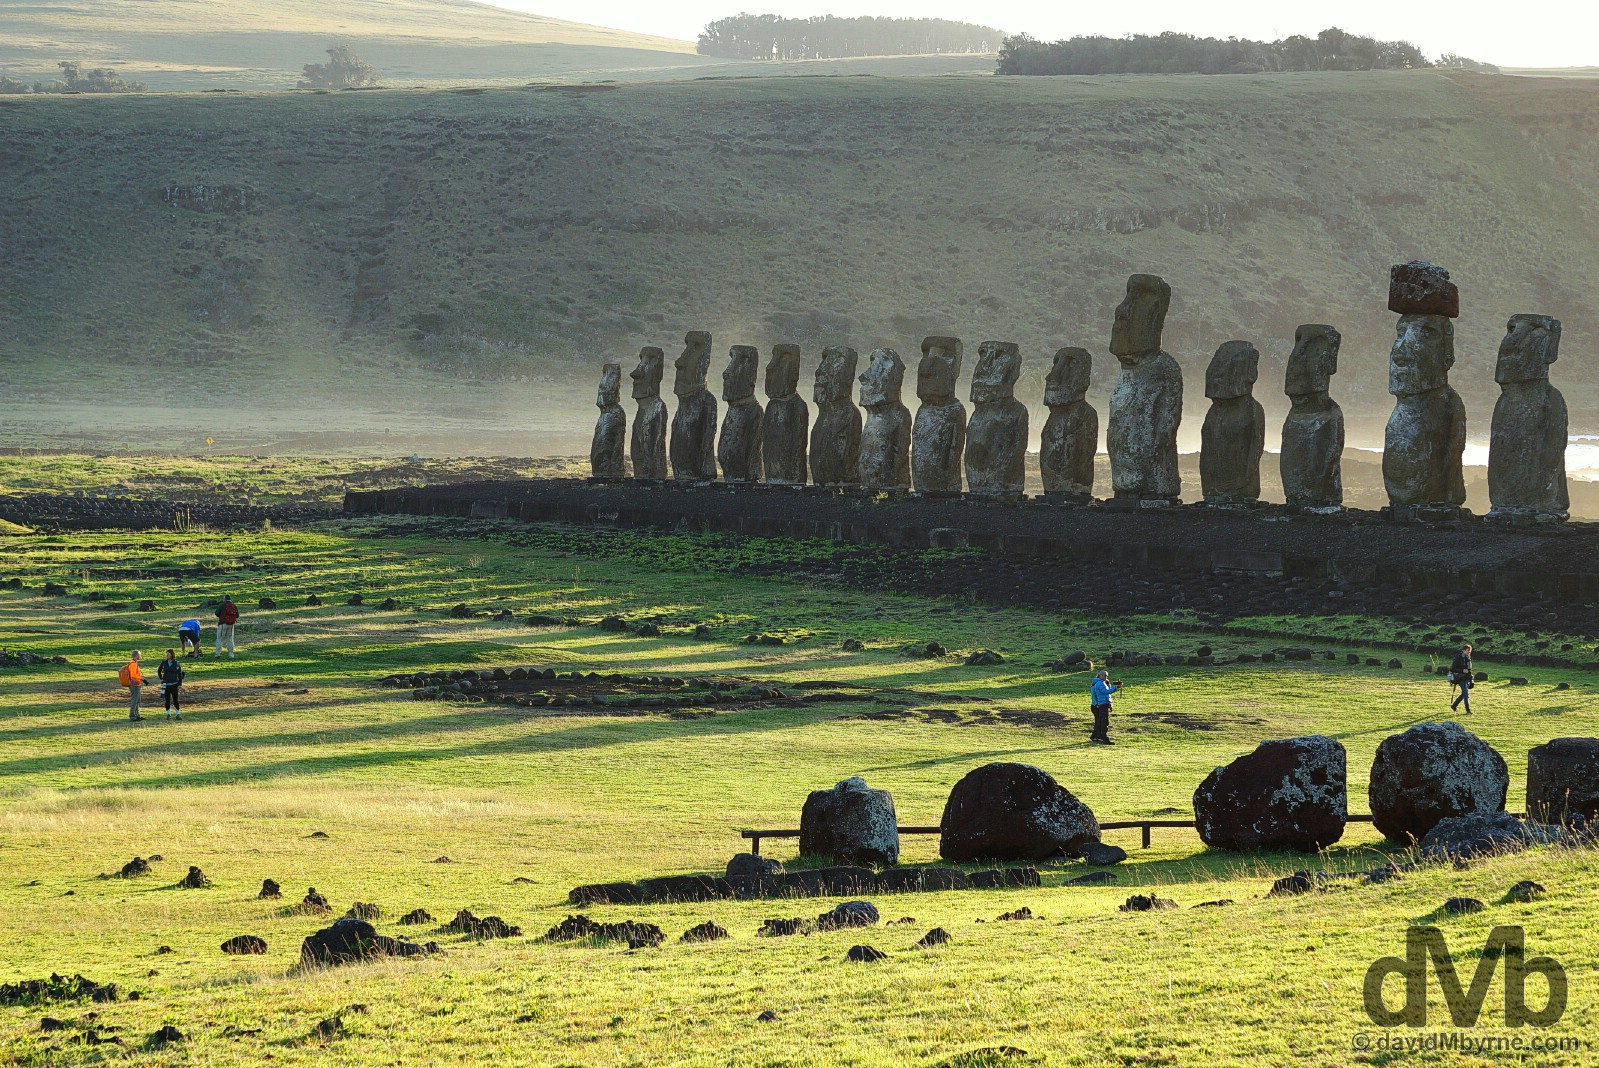 Post sunrise shadows at Ahu Tongariki on Easter Island, Chile. October 3, 2015.